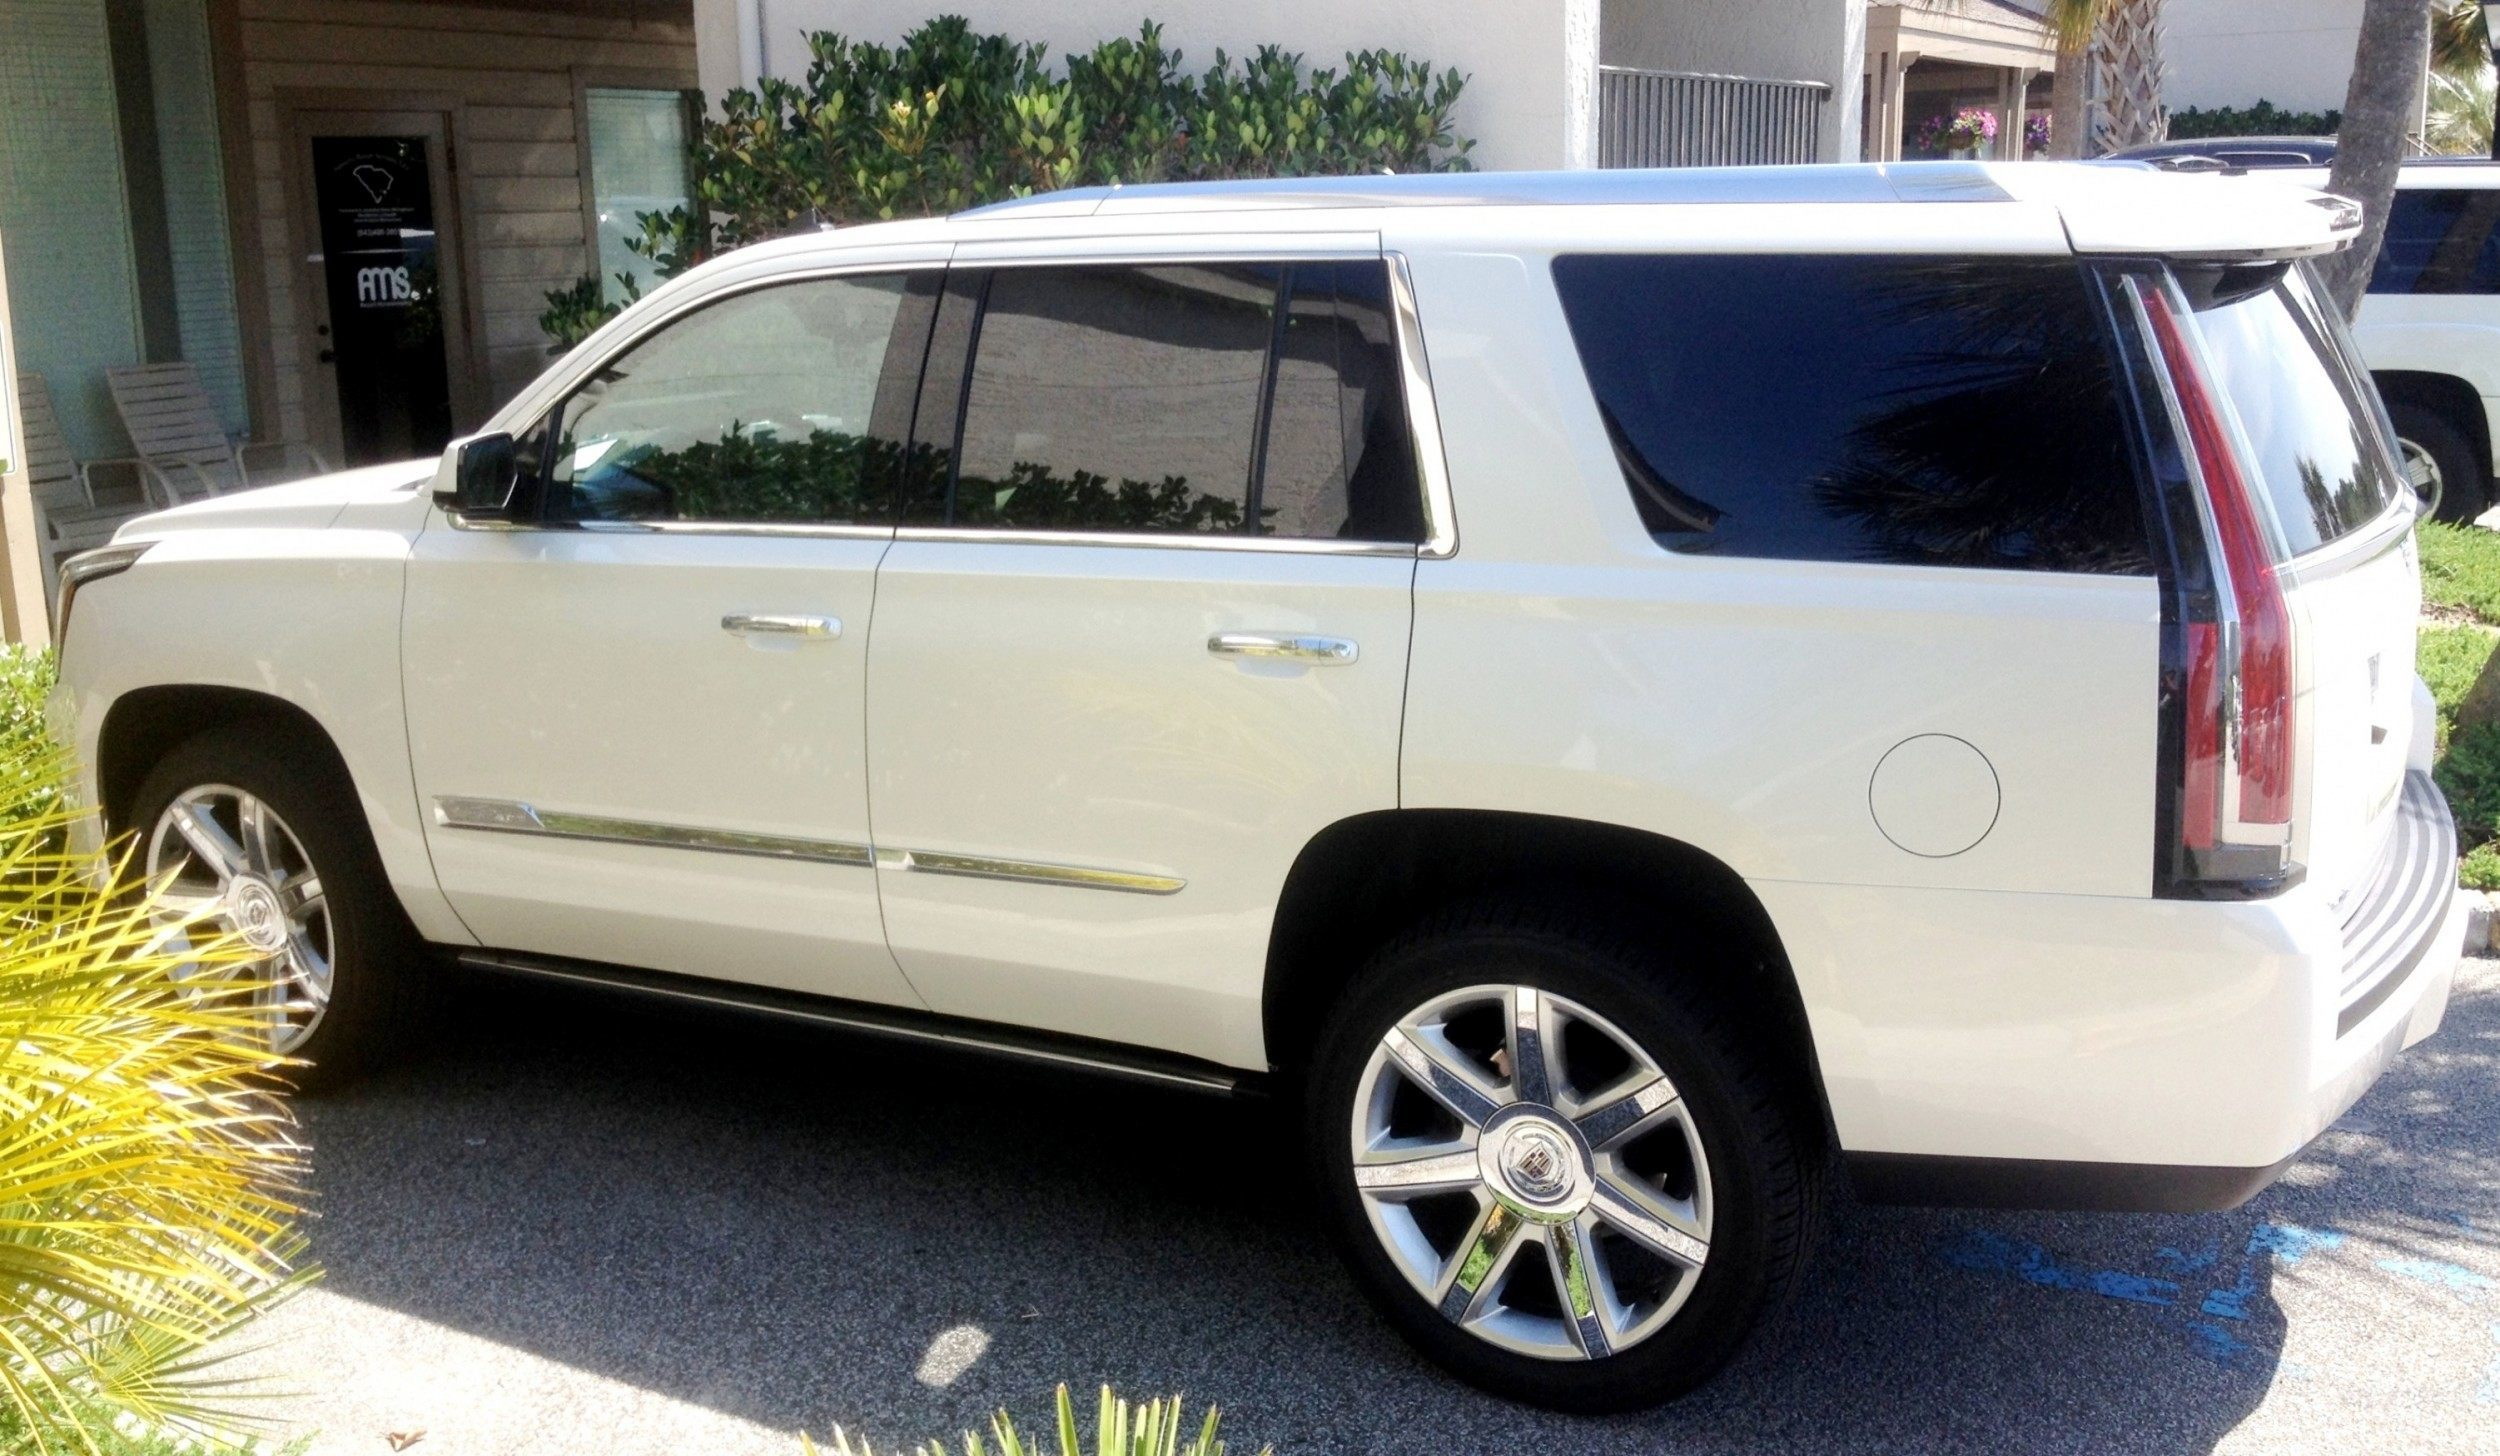 Update1 New Photos 2015 Cadillac Escalade Majors On Interior Upgrades Leathers Colors